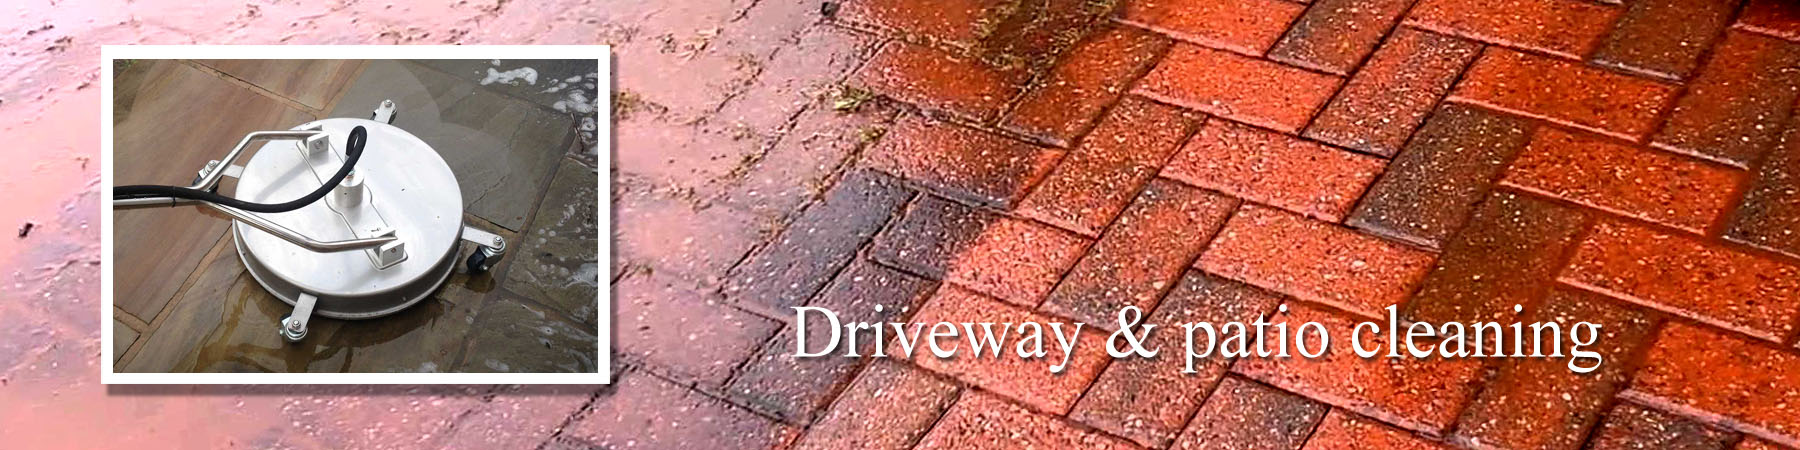 J.R. Driveway & Patio Cleaning East Dean J R Cleaning